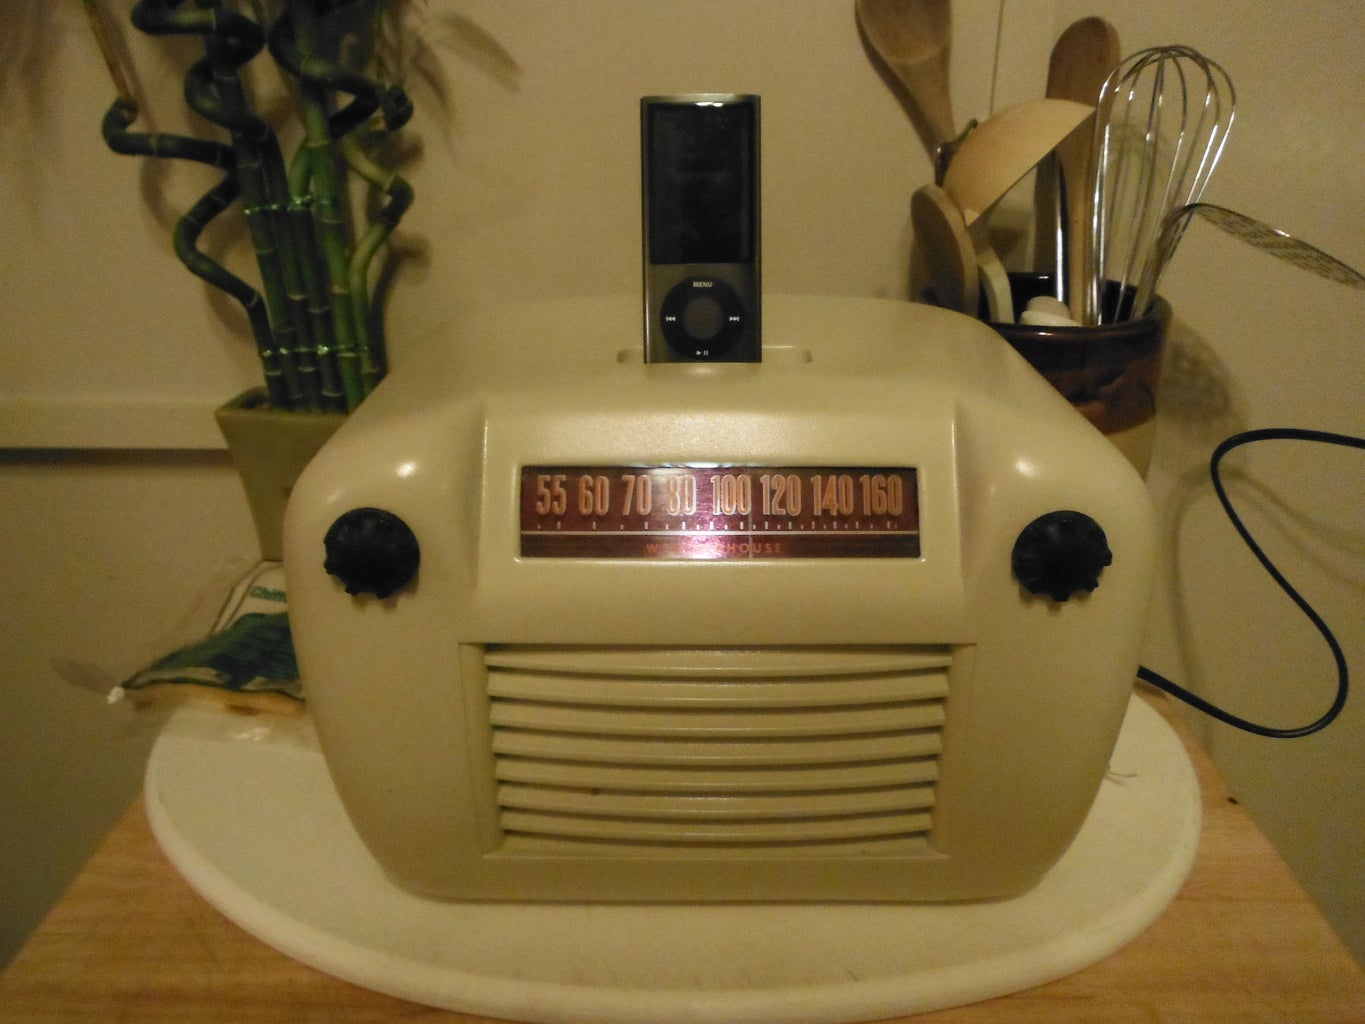 Plug It In, Turn It On, and Blast Your IPod!